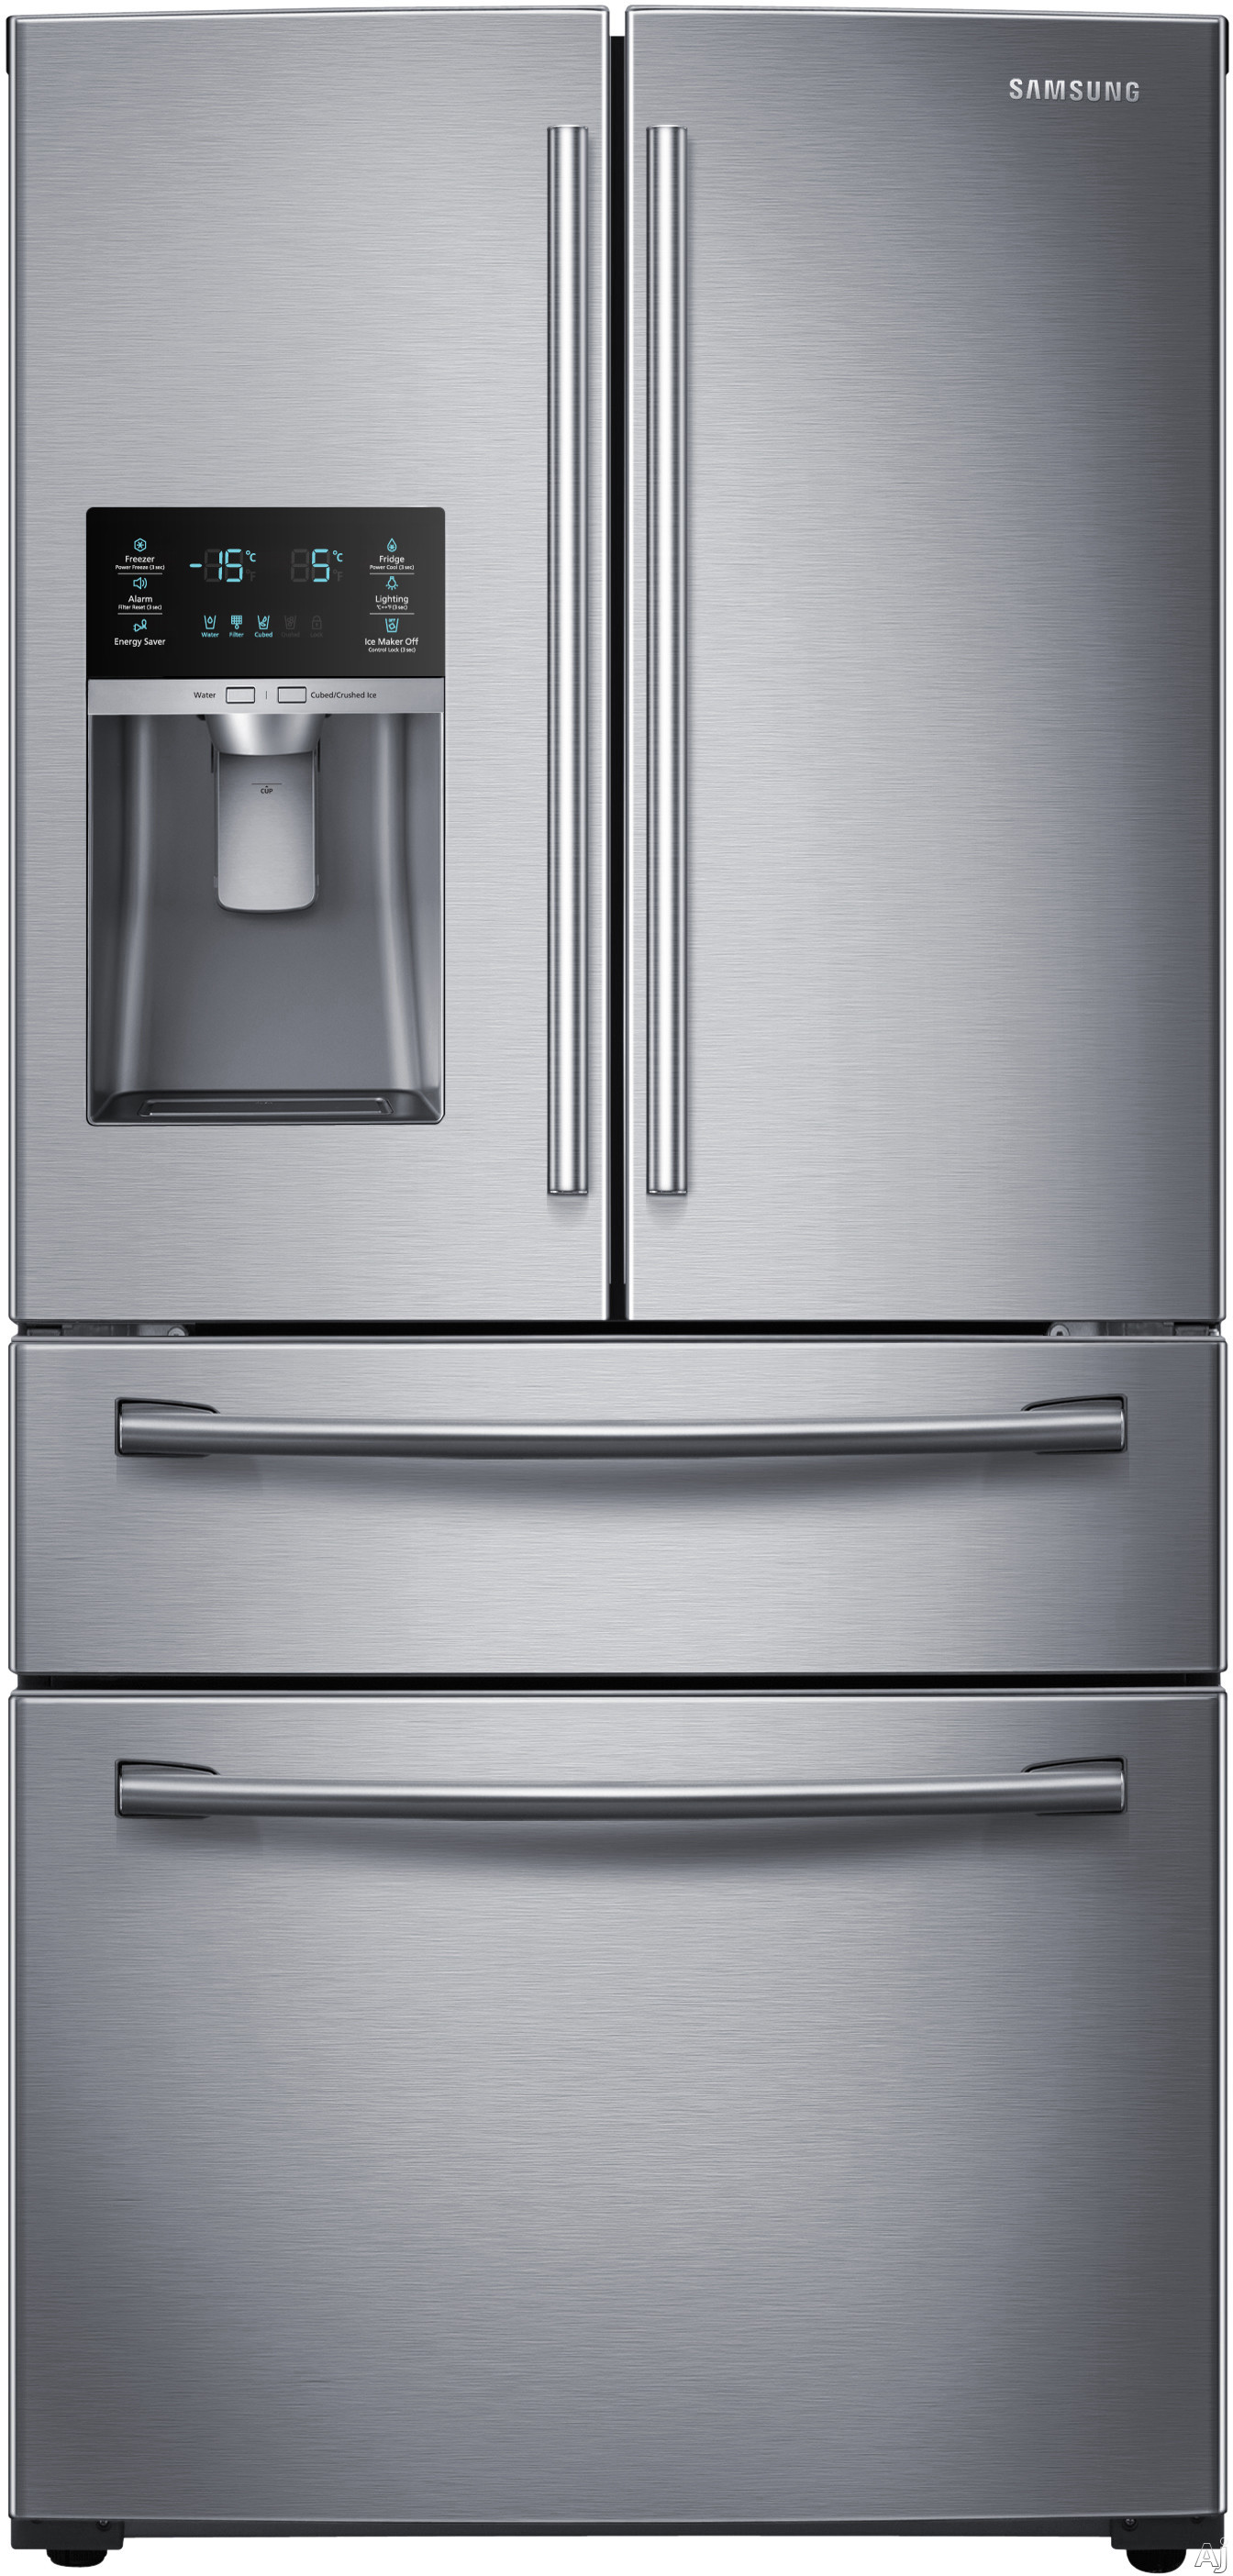 Samsung rf28hdedbsr french door refrigerator review dual door french door refrigerator with a 189 cu ft refrigerator rubansaba